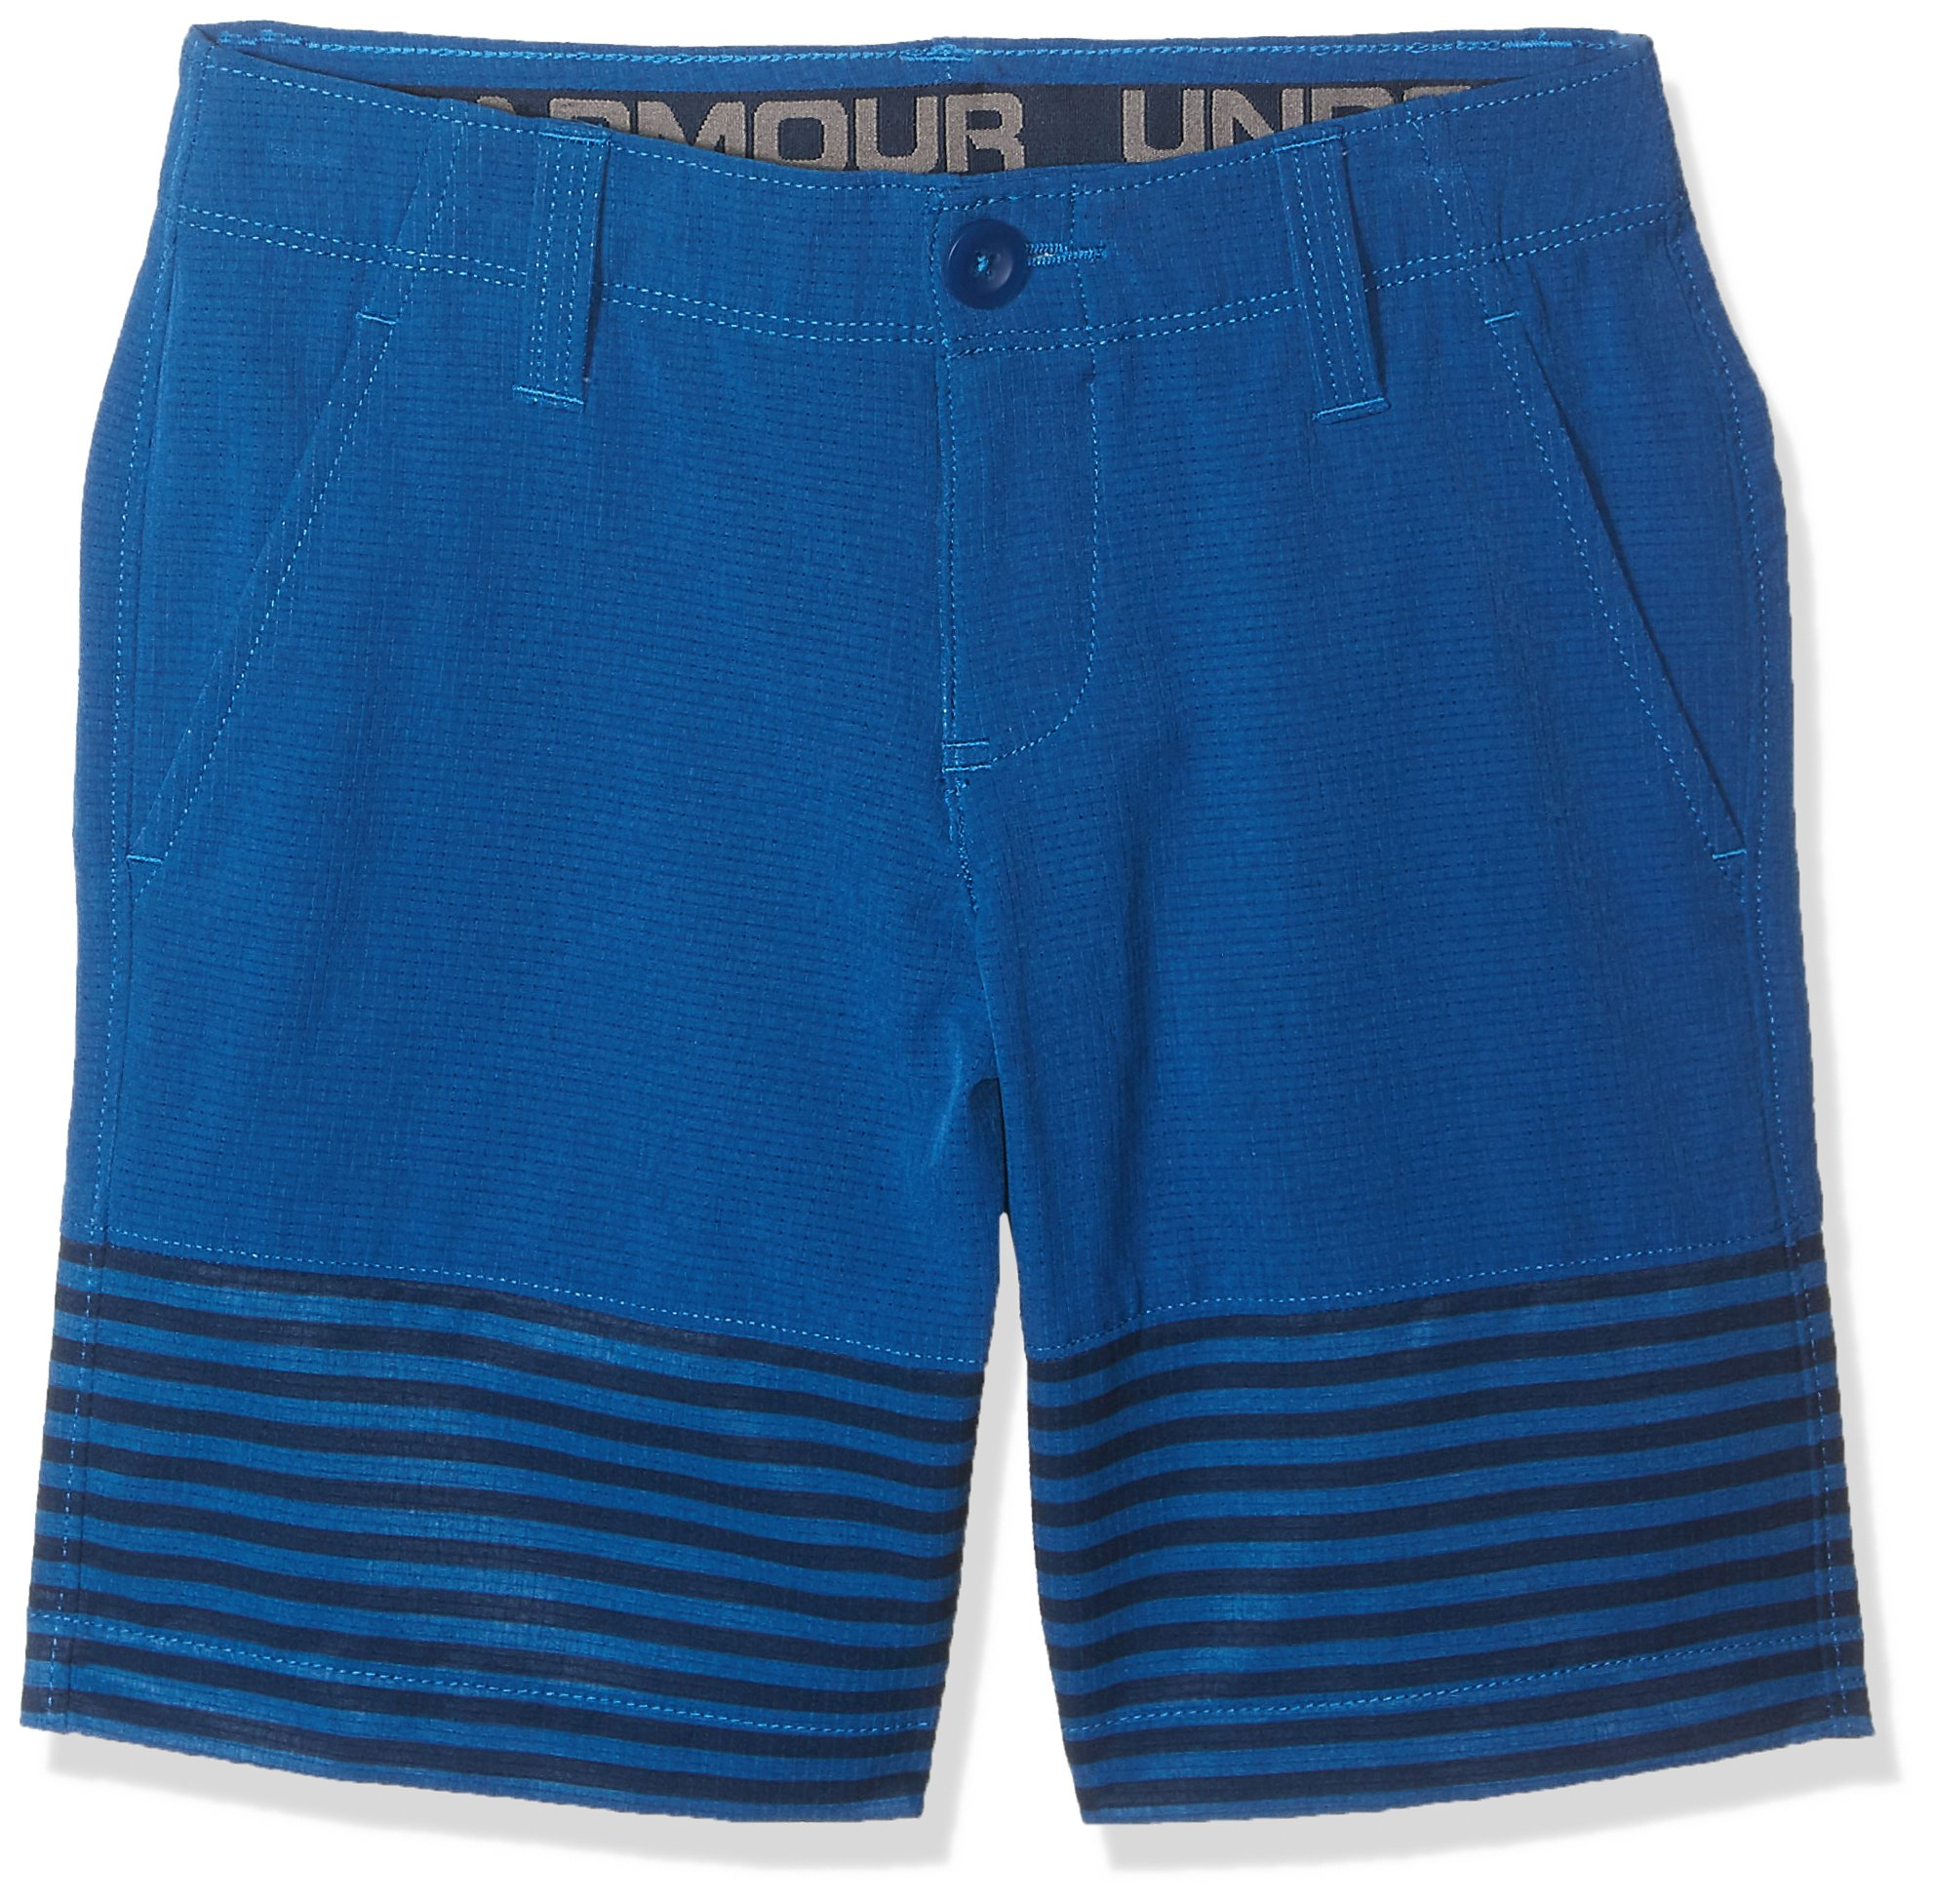 Under Armour Boys Mp Vented Nov Shorts, Moroccan Blue (487)/Moroccan Blue, 7